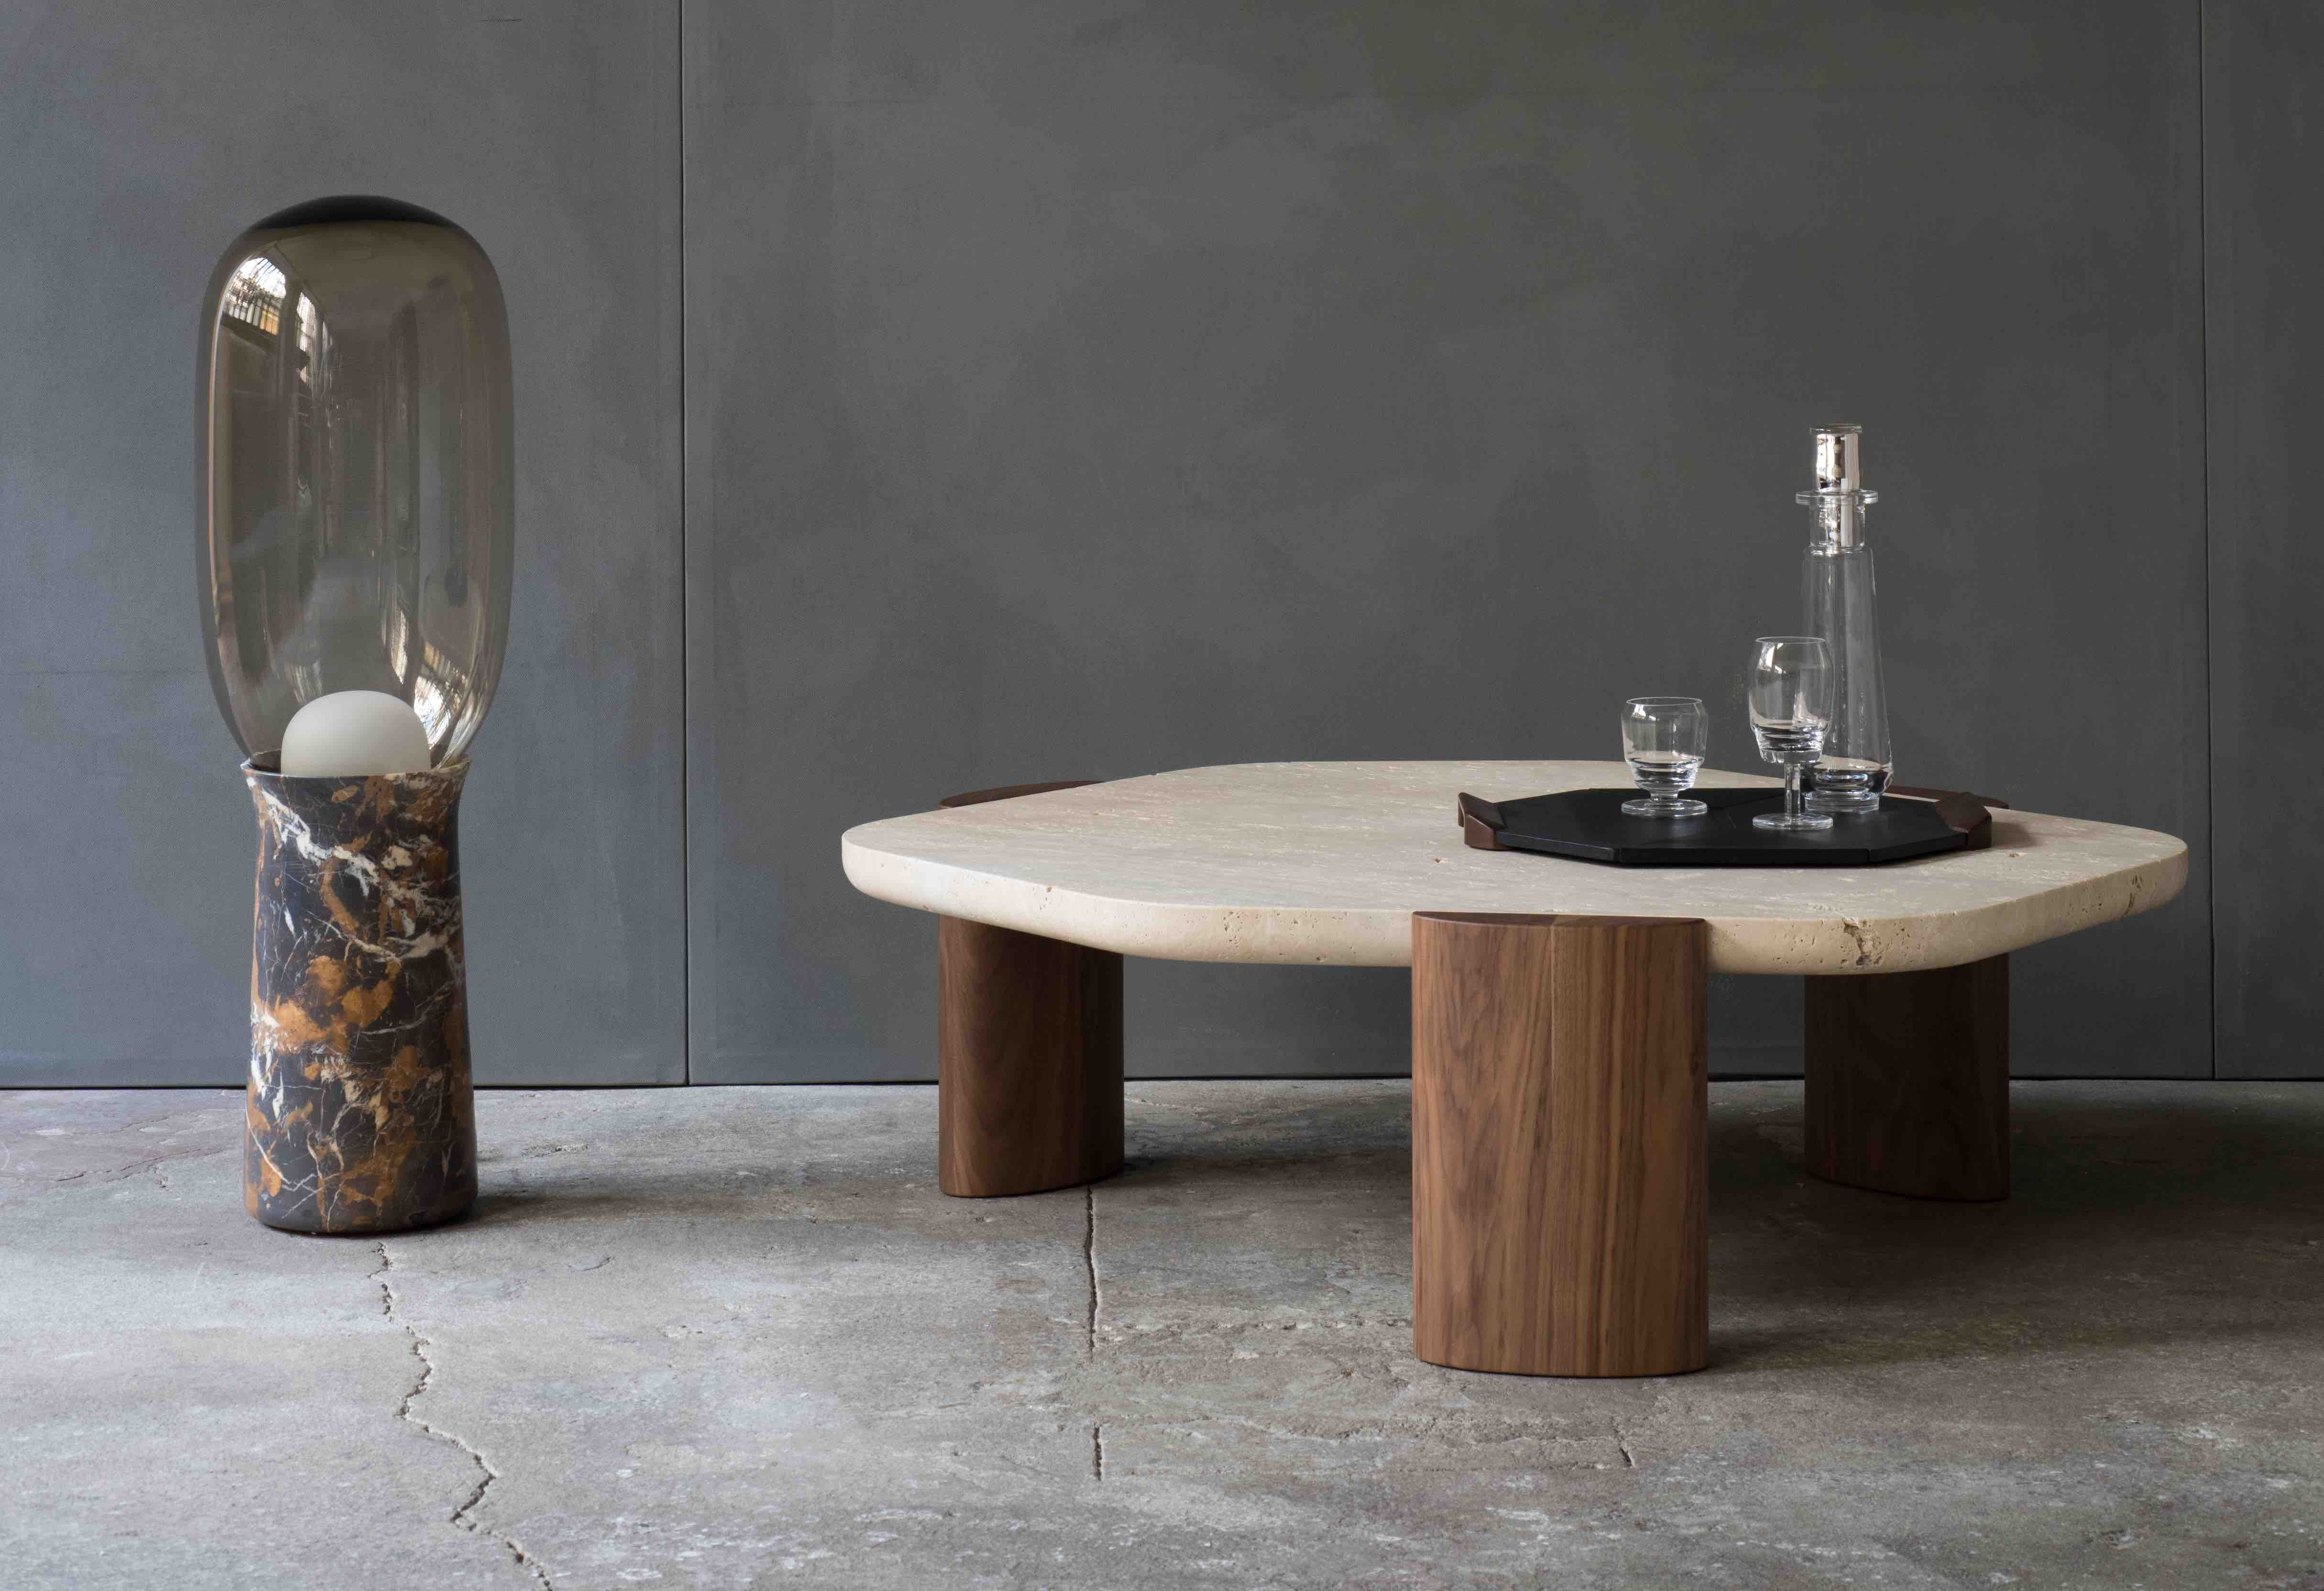 Lob Low Table Coffee Table Travertine Walnut Made In France Customizable Bespoke Furniture Christophe Low Tables Solid Coffee Table Perfect Coffee Table [ 3328 x 4860 Pixel ]